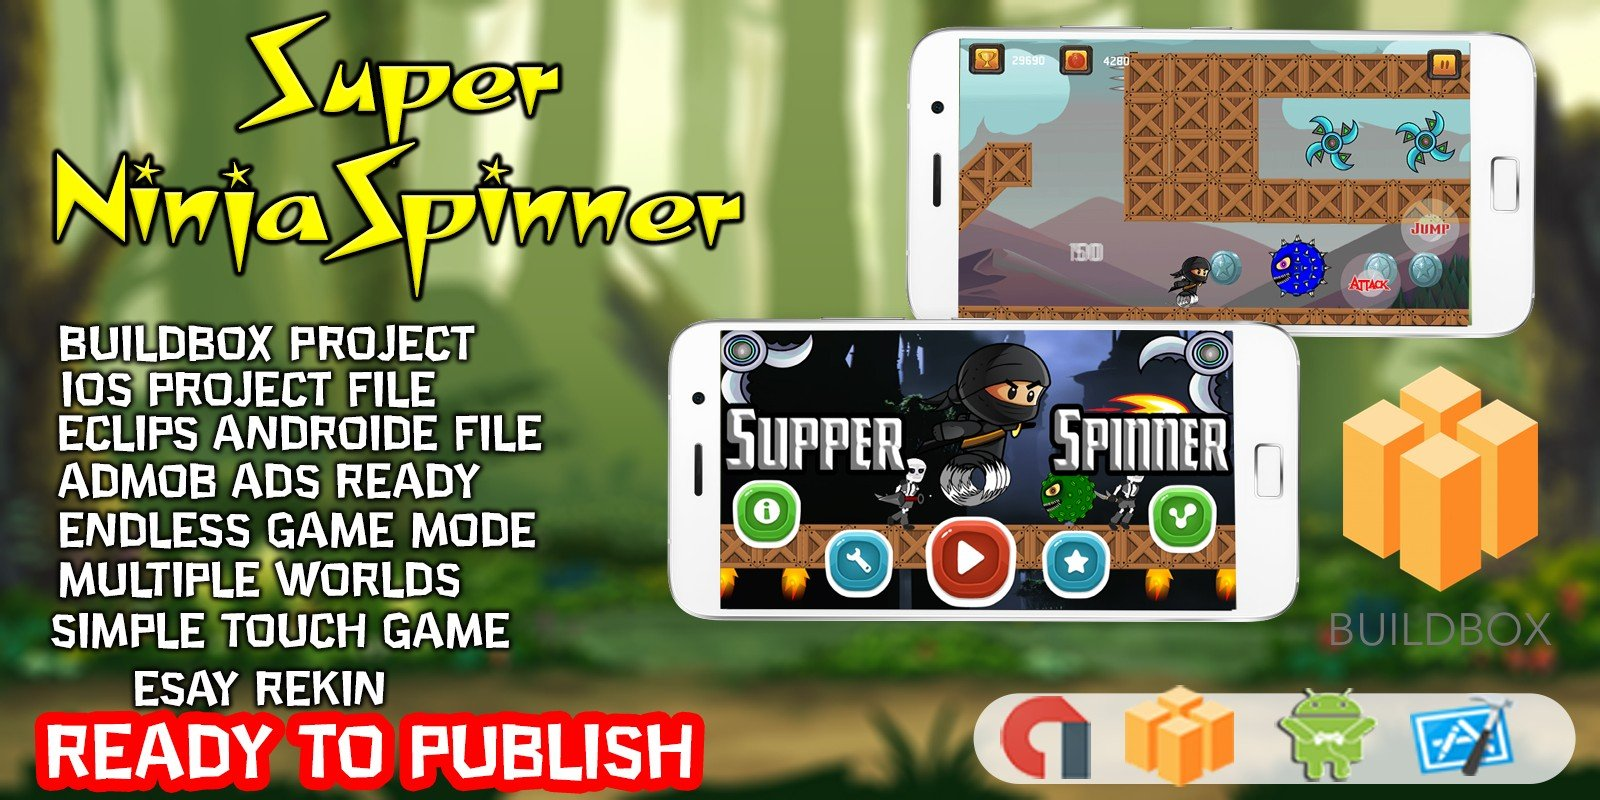 Super Ninja Spinner - Buildbox Template